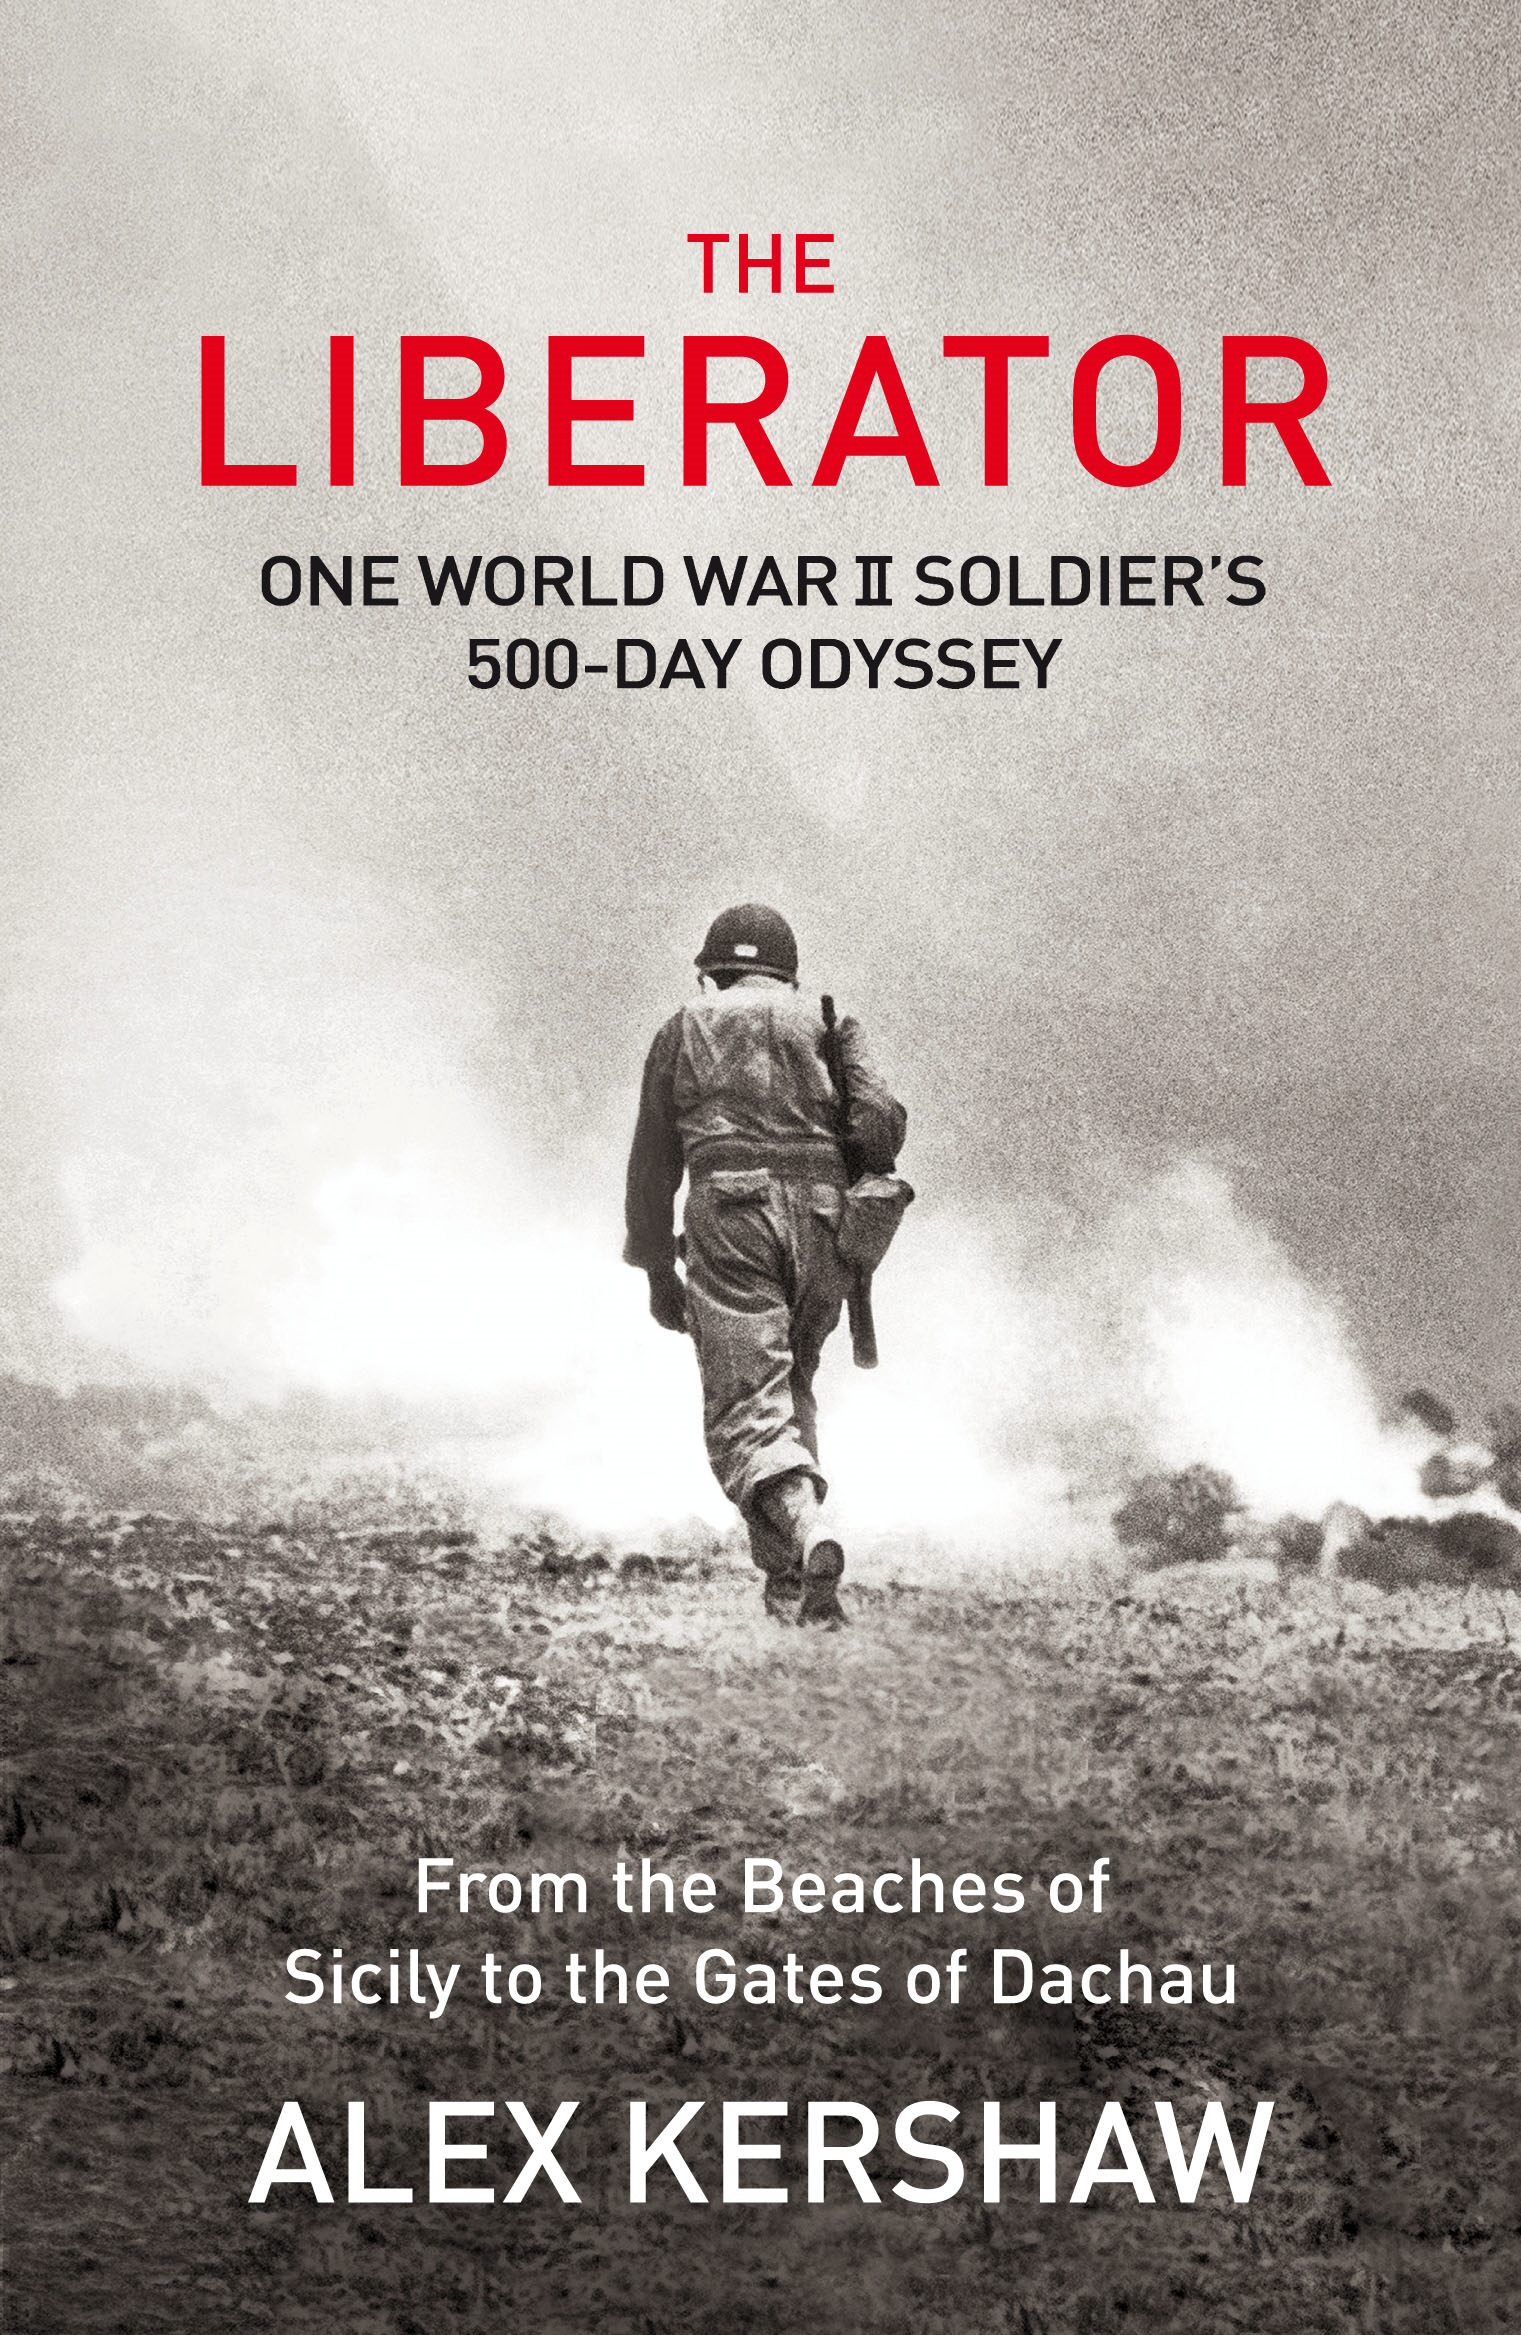 The Liberator One World War II Soldier's 500-Day Odyssey From the Beaches of Sicily to the Gates of Dachau